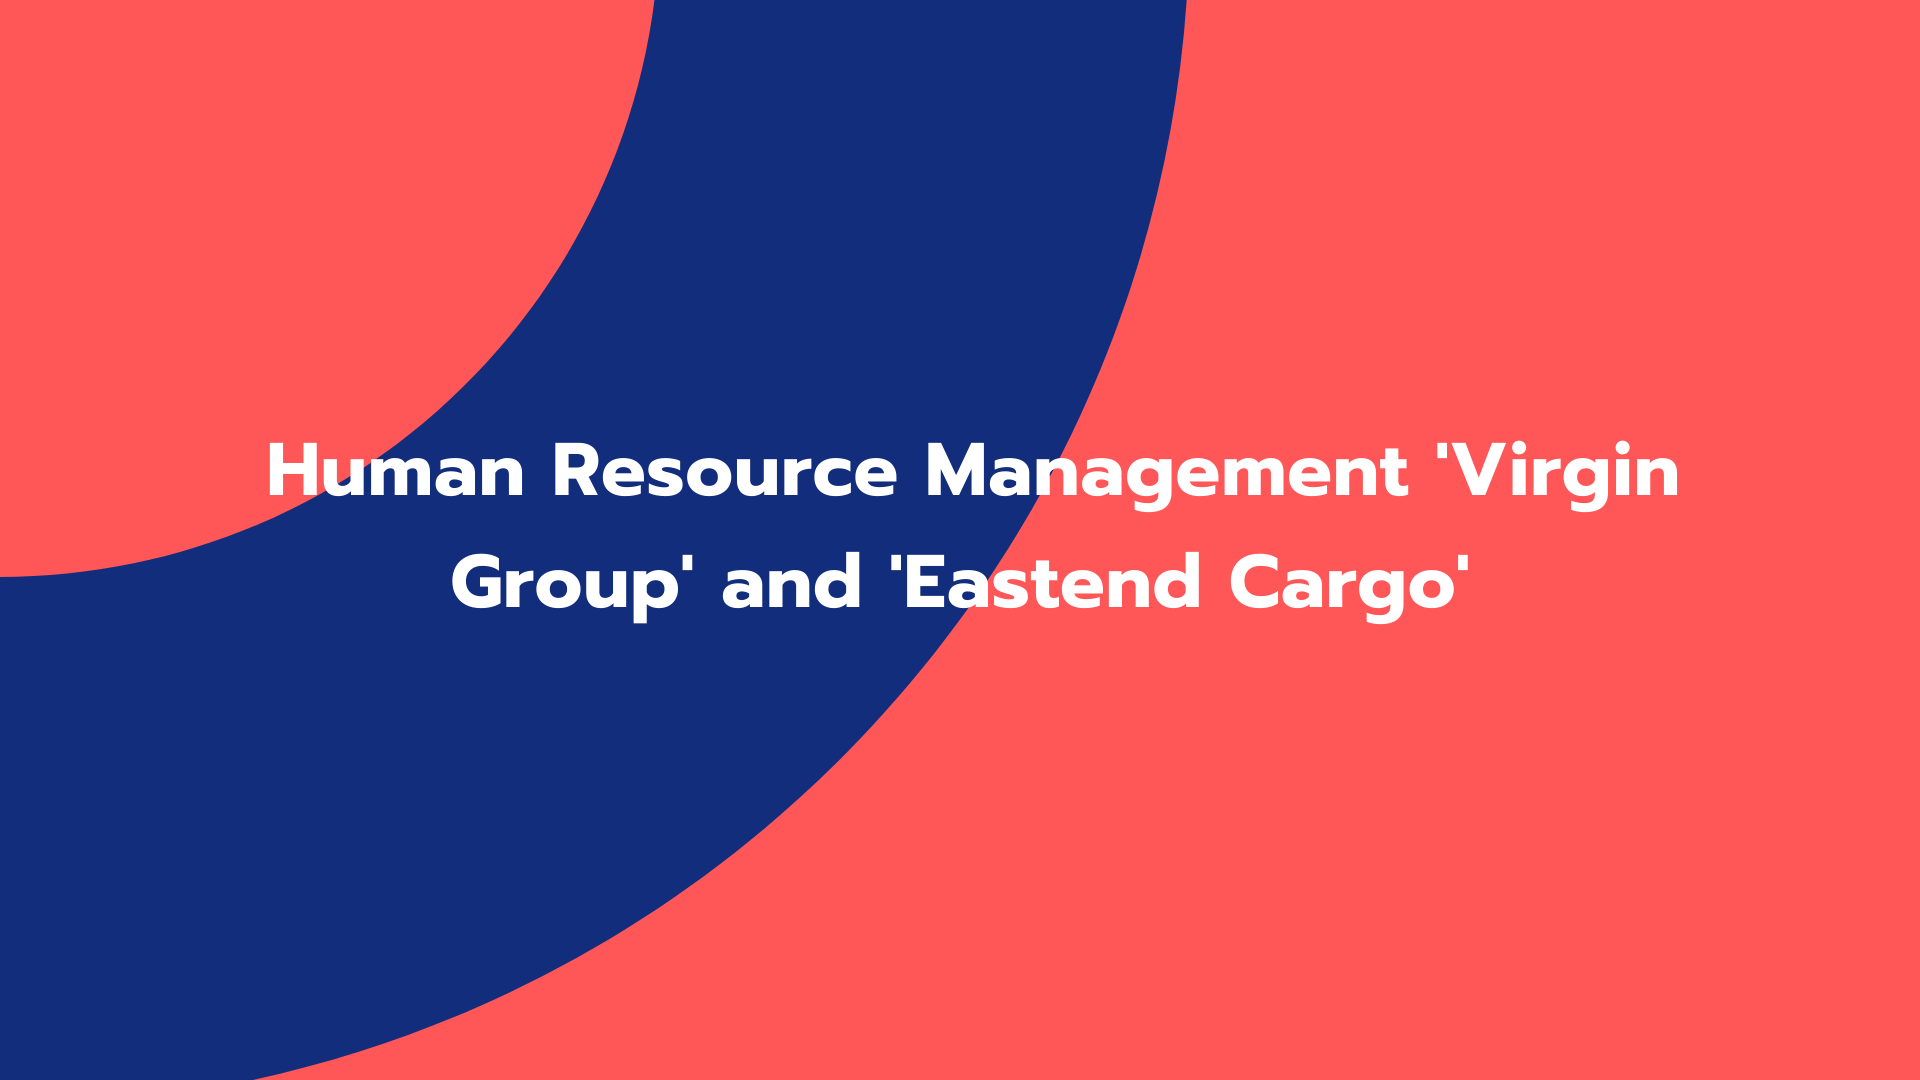 Human Resource Management 'Virgin Group' and 'Eastend Cargo'